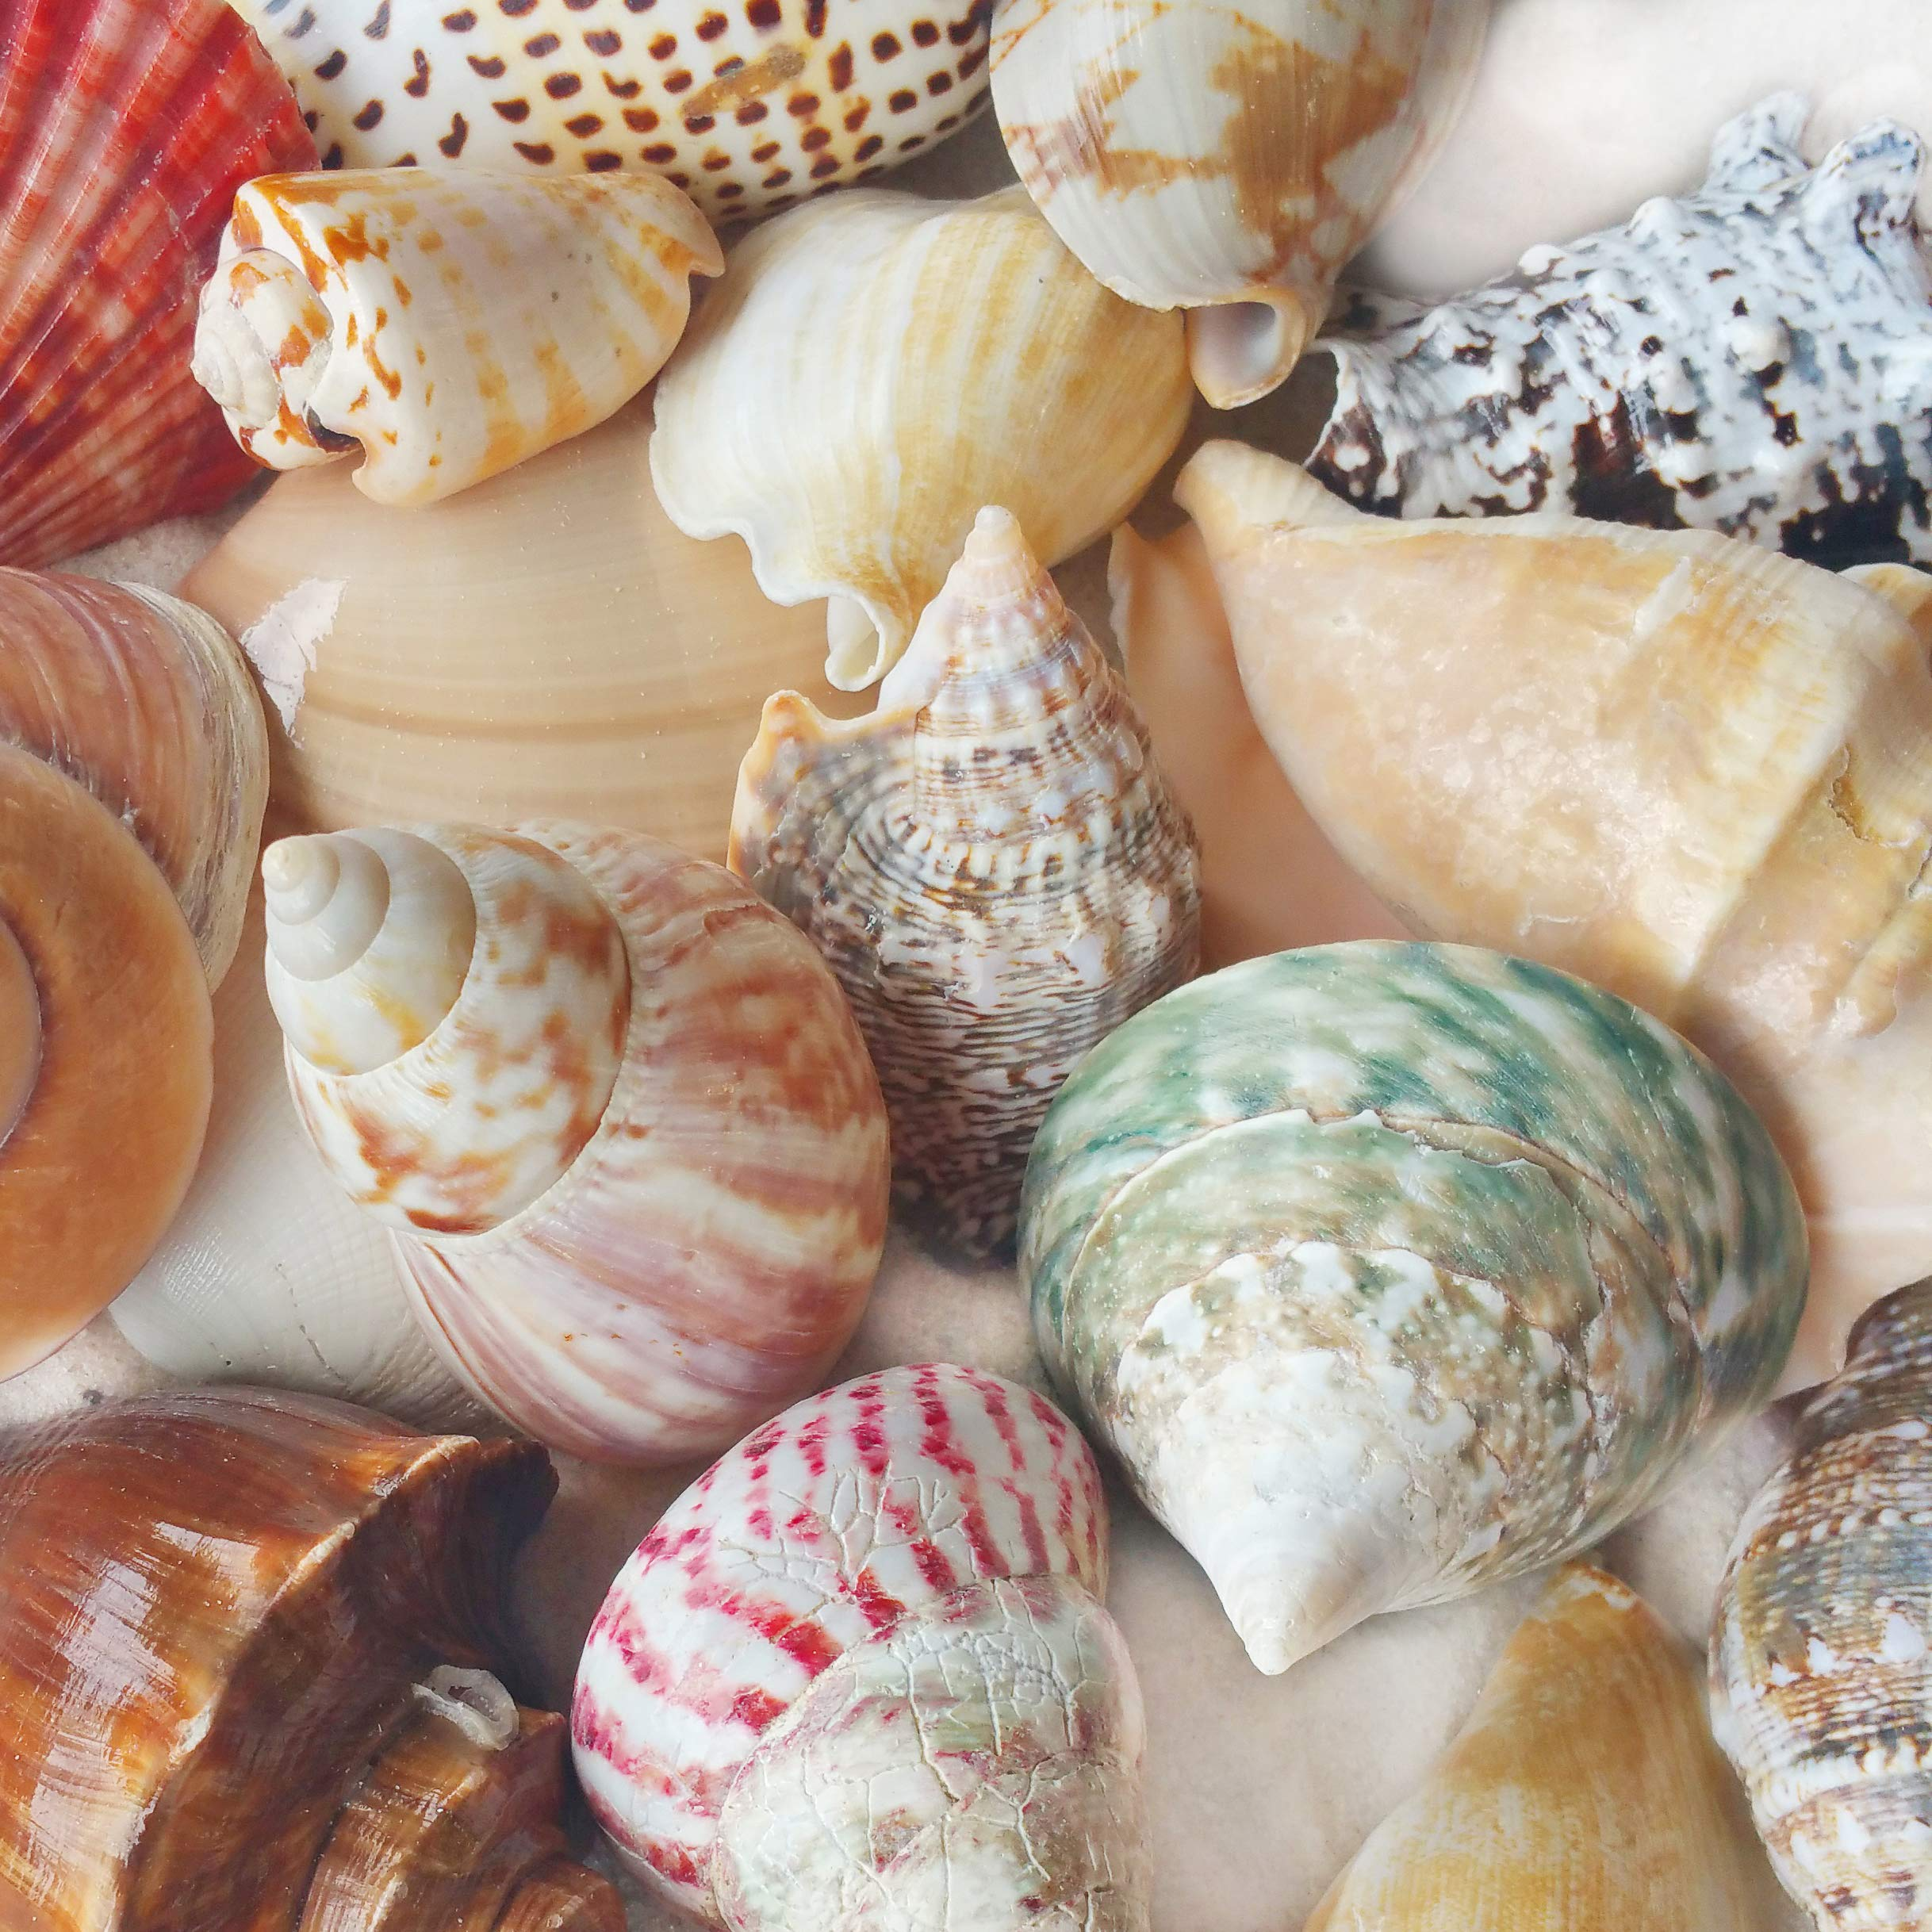 Tumbler Home Polished Sea Shells - Sizes 2.25'' to 4'' - Approx. 15 Beach Shells in Mixed Colors - 1.75 Lb Nautical Beach Décor